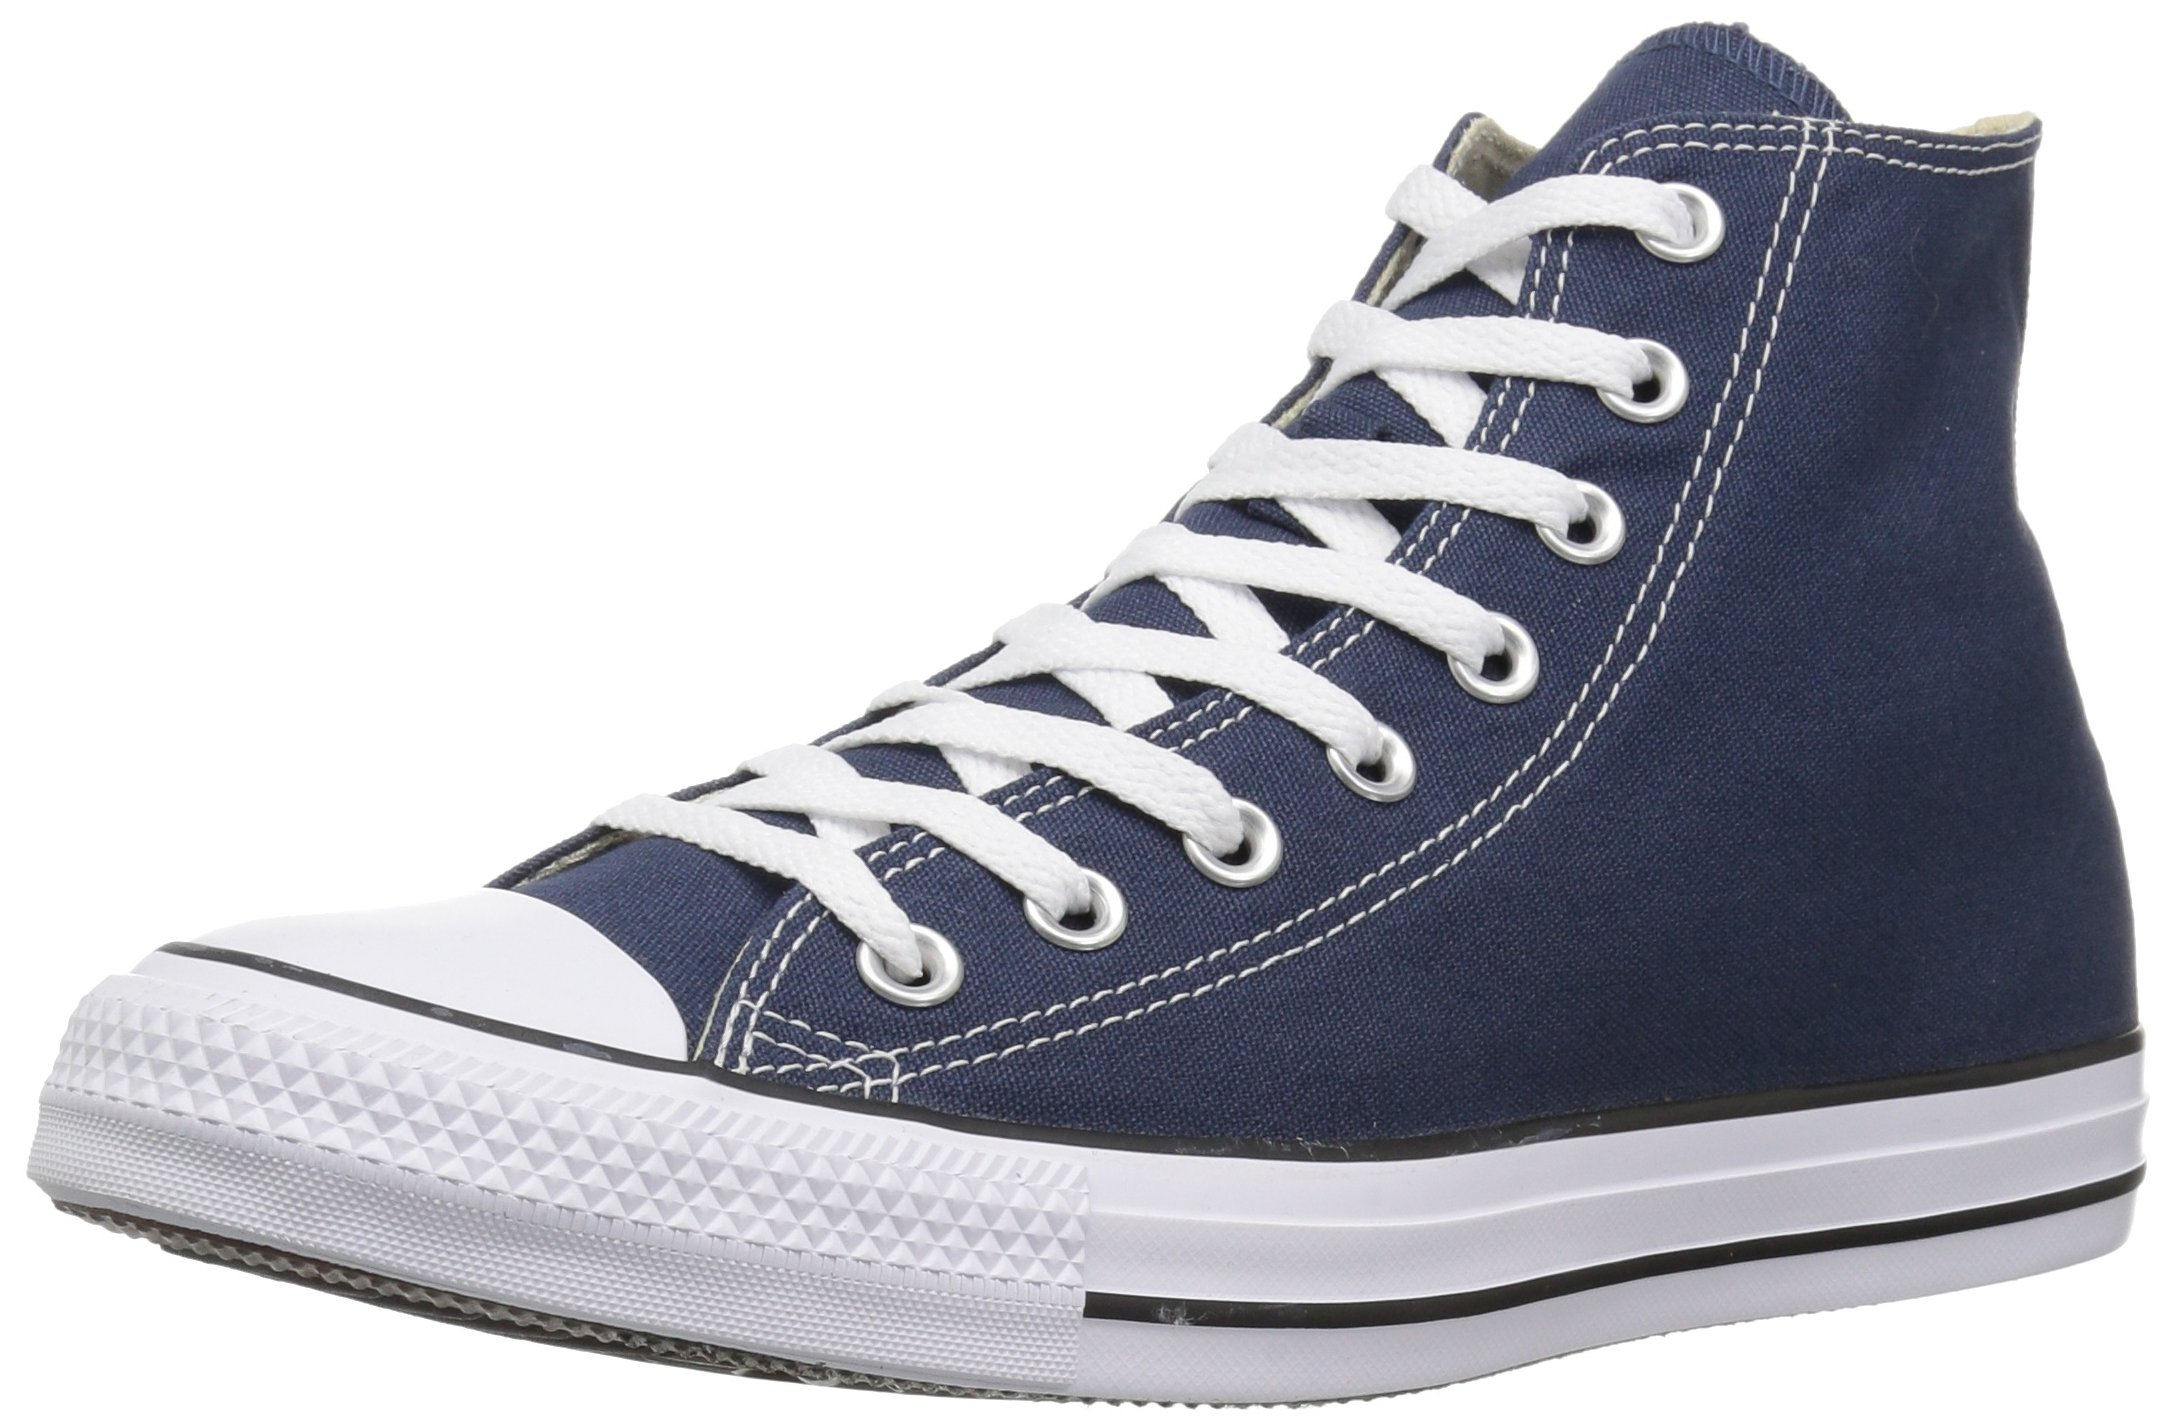 37bc07e4085d Galleon - Converse Chuck Taylor All Star High Top Sneakers (9 B(M) US  Women 7 D(M) US Men